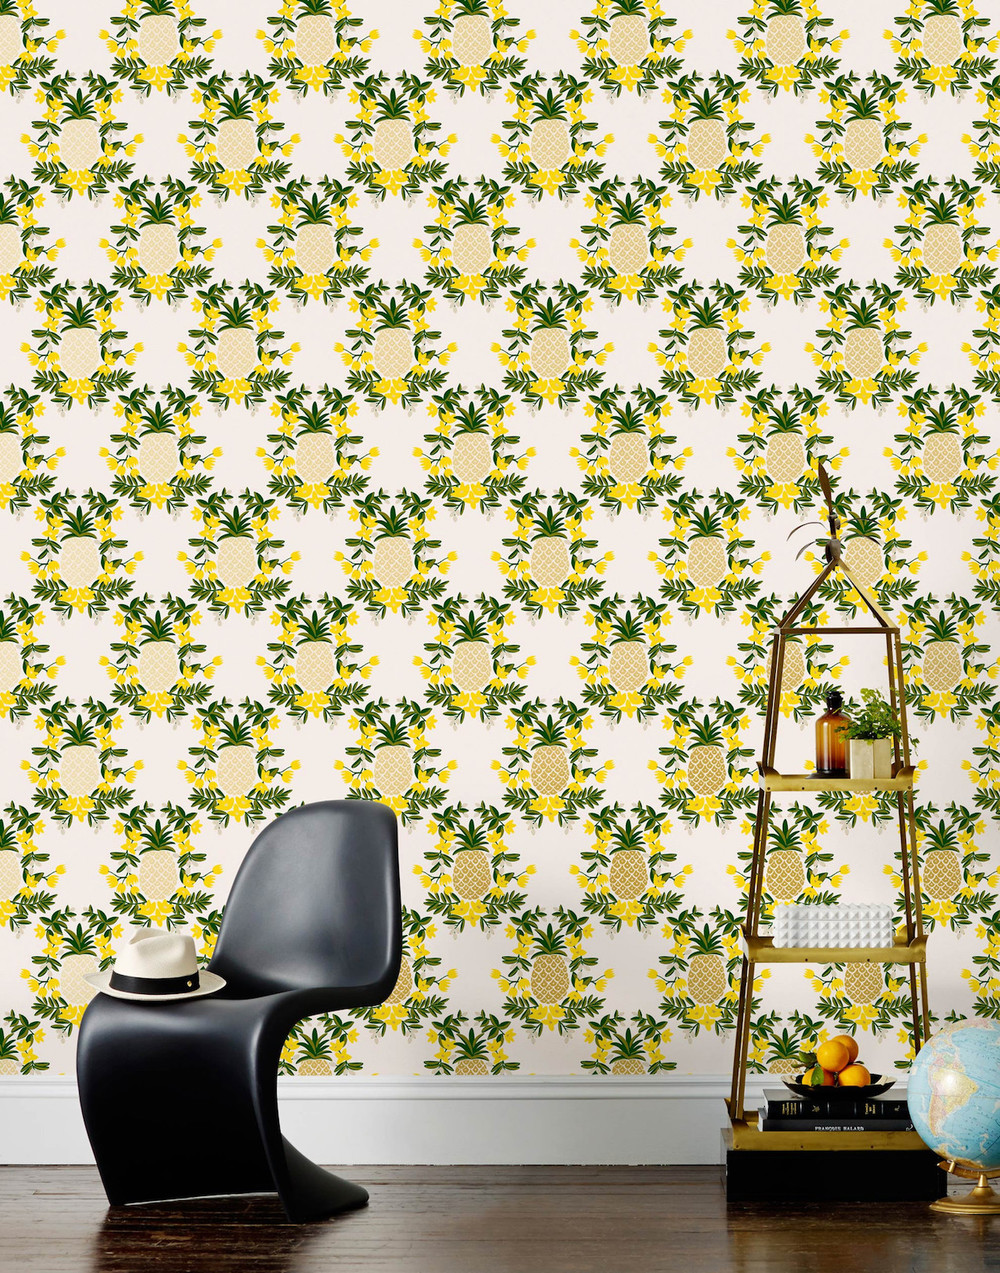 But don't just consider furniture, make over your entire walls with a crazy carnival inspired motif, like this Pineapple (Yellow) wallpaper from  Hygge & West .